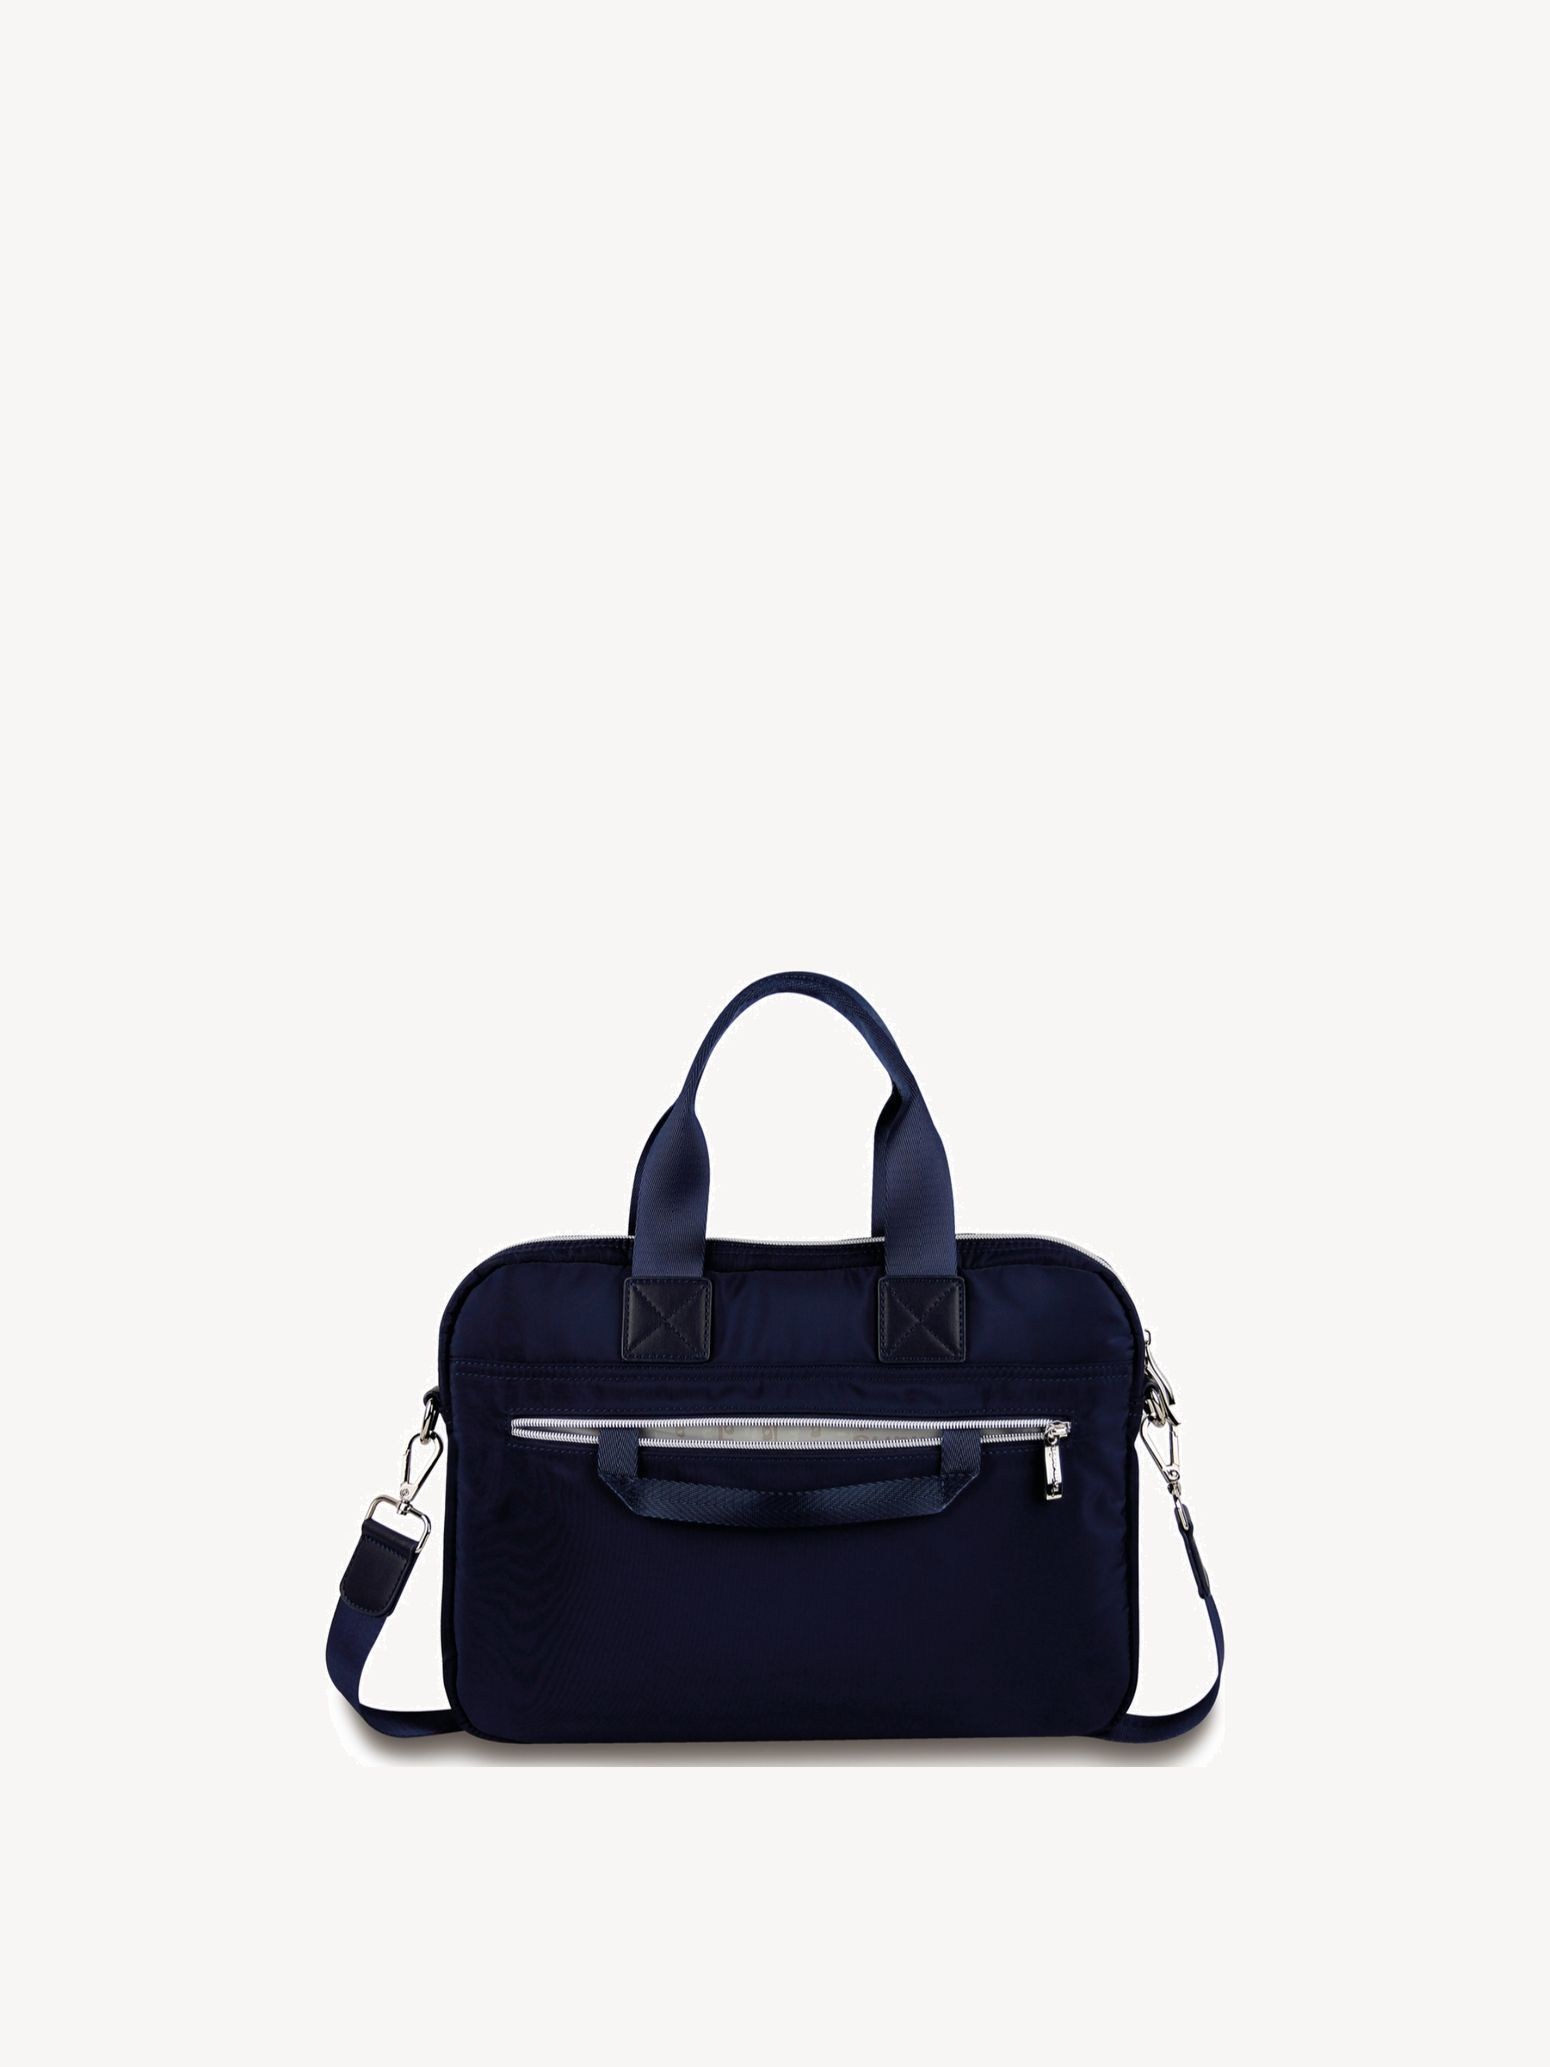 Laptoptasche - blau, navy, hi-res